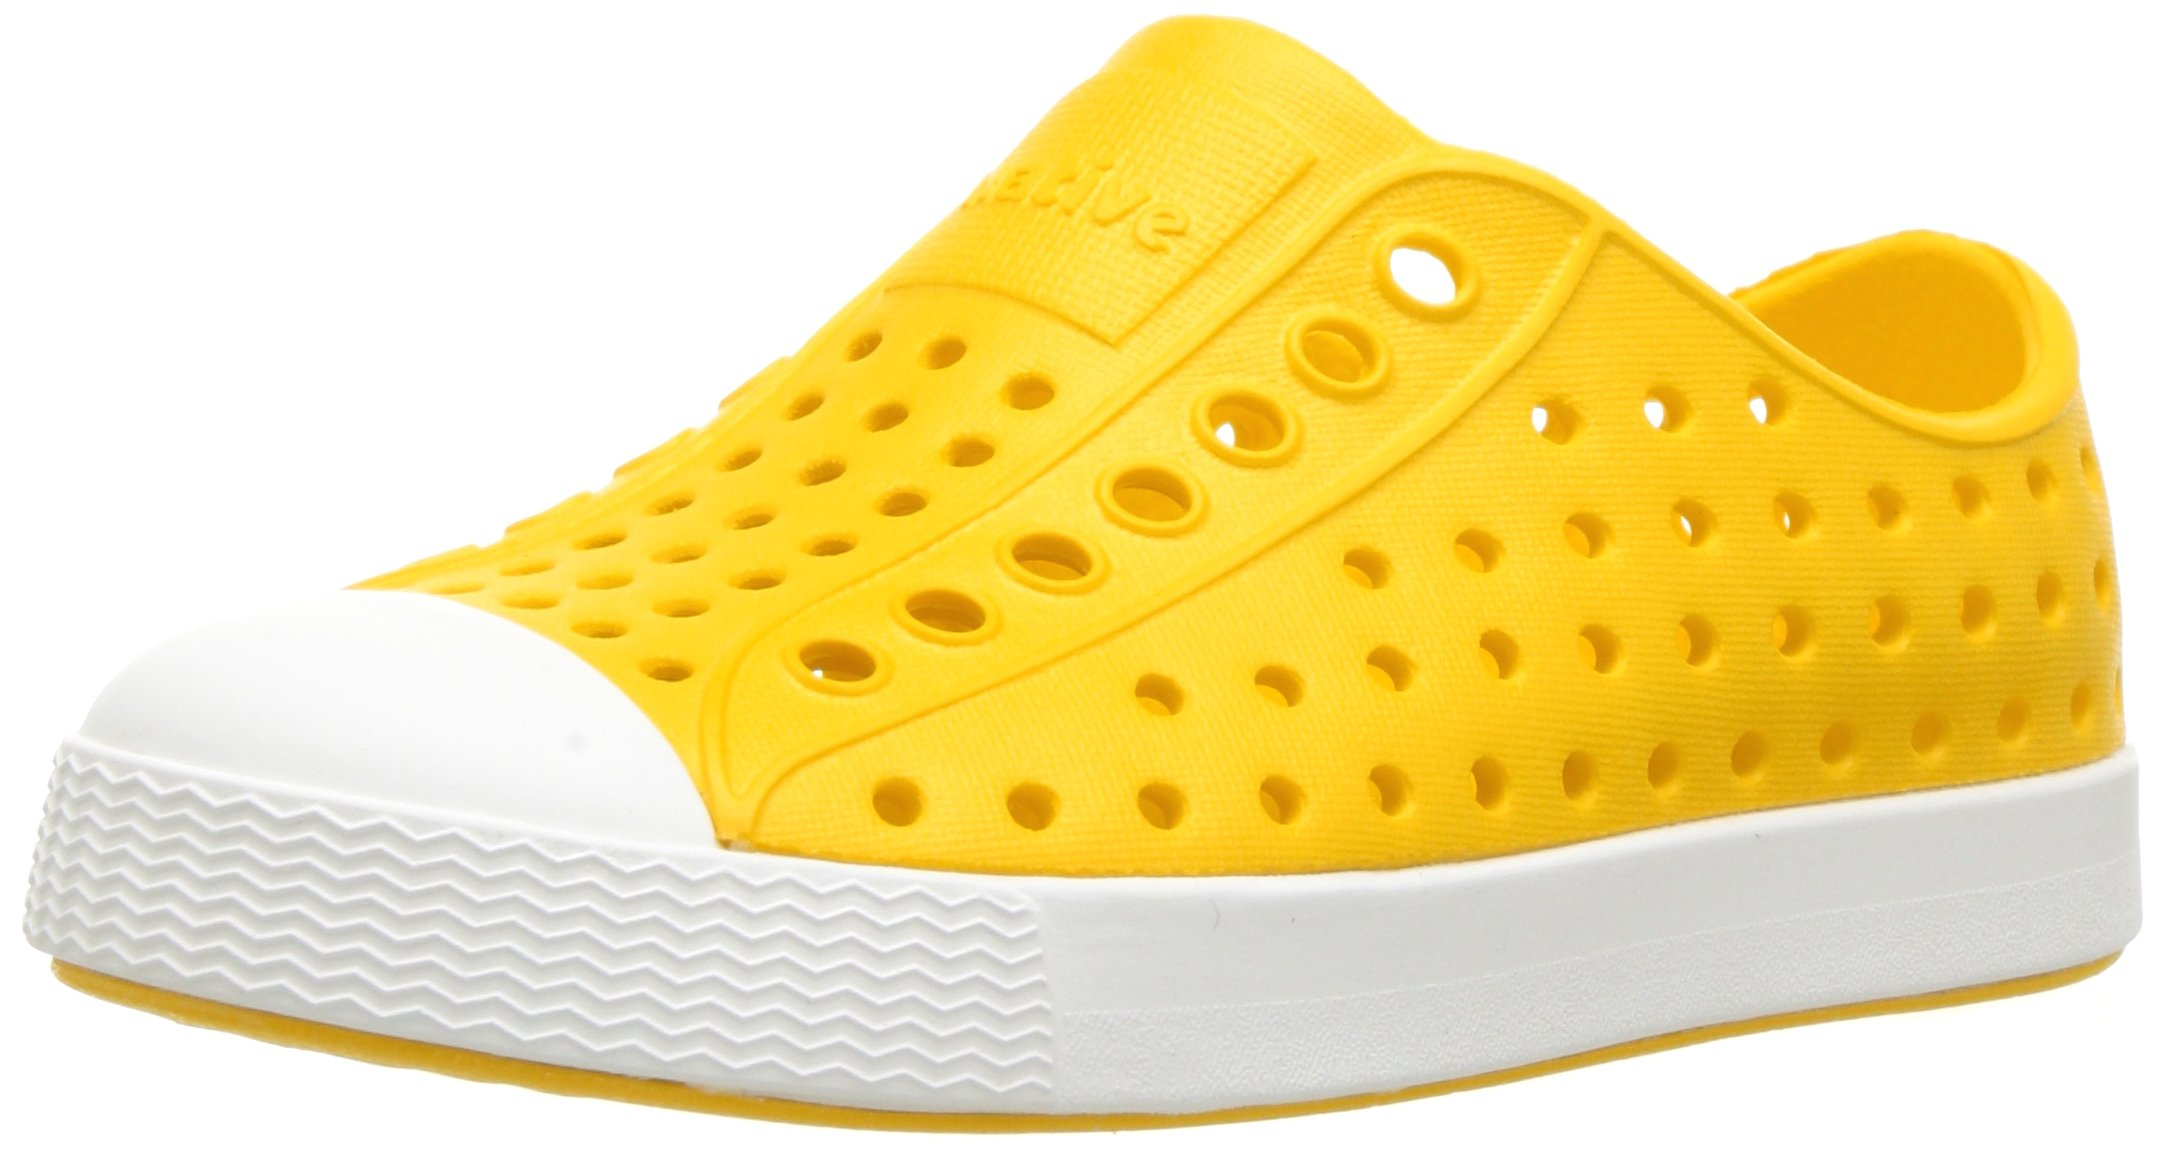 Native Unisex-kids Jefferson Water Proof Shoes, Crayon Yellow/Shell White, 12 Medium US Little Kid by Native Shoes